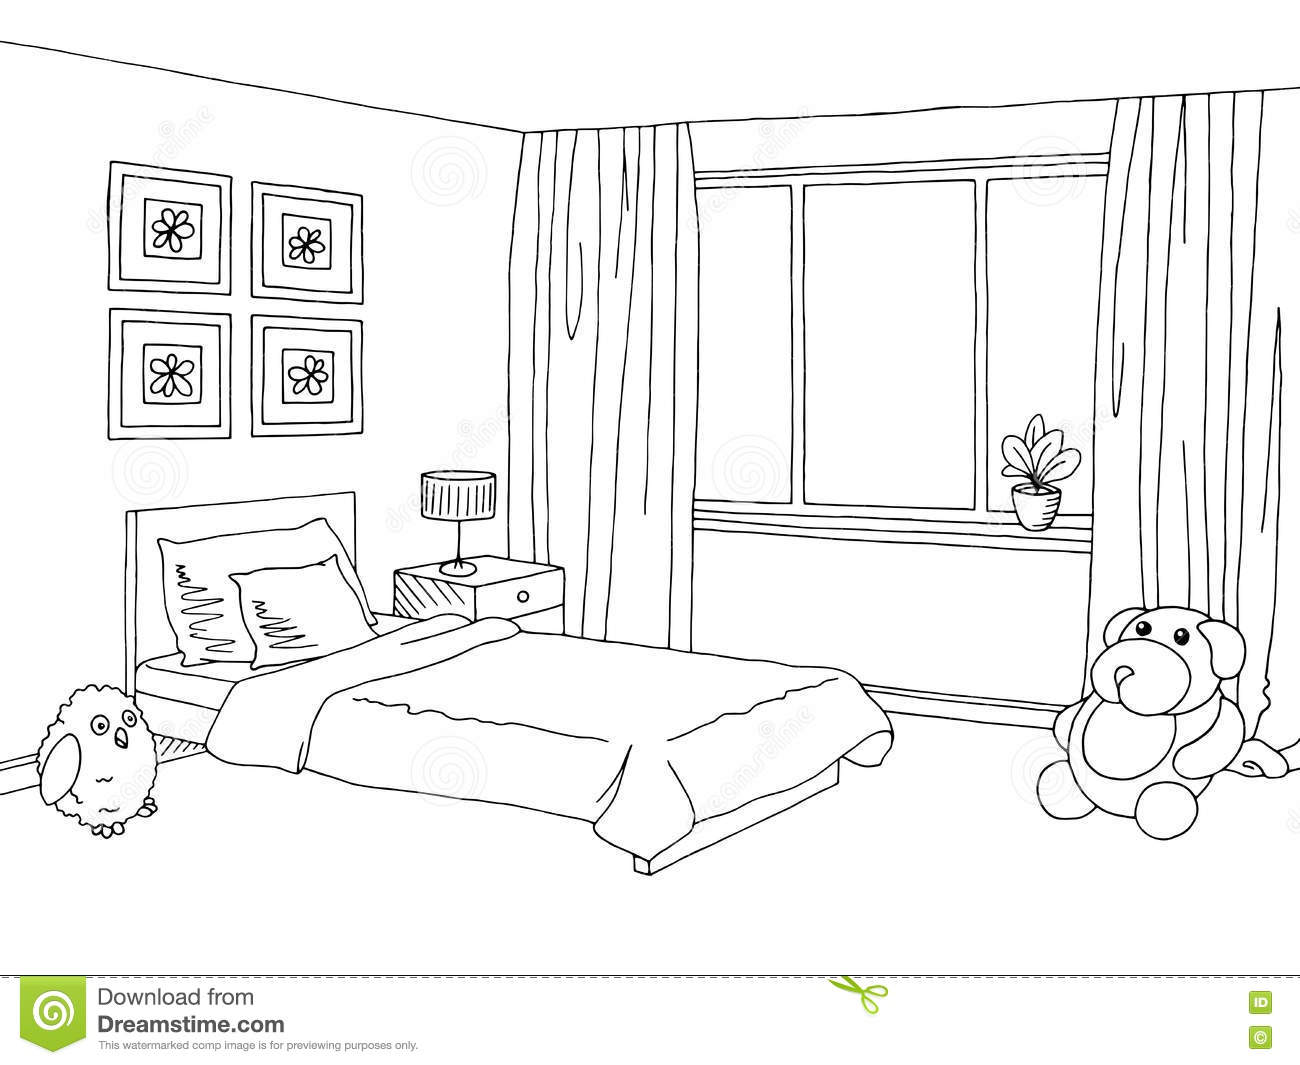 3 Bedroom 3 Bathroom together with 396d31af87689b7a Villa Savoye Basement Plan moreover House Built 31 Shipping Containers likewise Stock Photo Icon Man Doing His Routine Vector Illustration Image44693575 additionally Stock Illustration Children Room Graphic Black White Interior Sketch Vector Image82281946. on 2 bed home plans